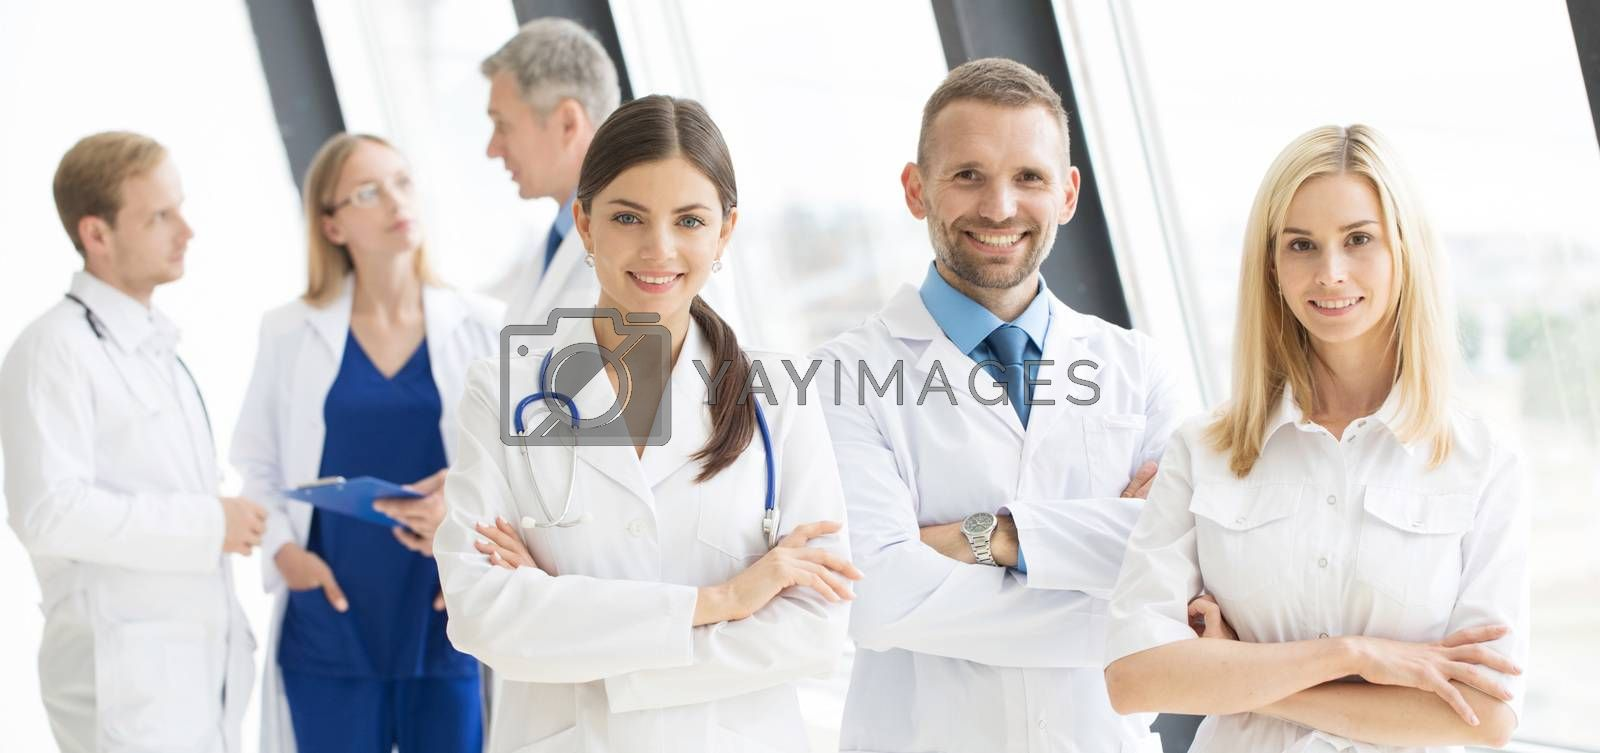 Team of medical professionals looking at camera, smiling, arms crossed